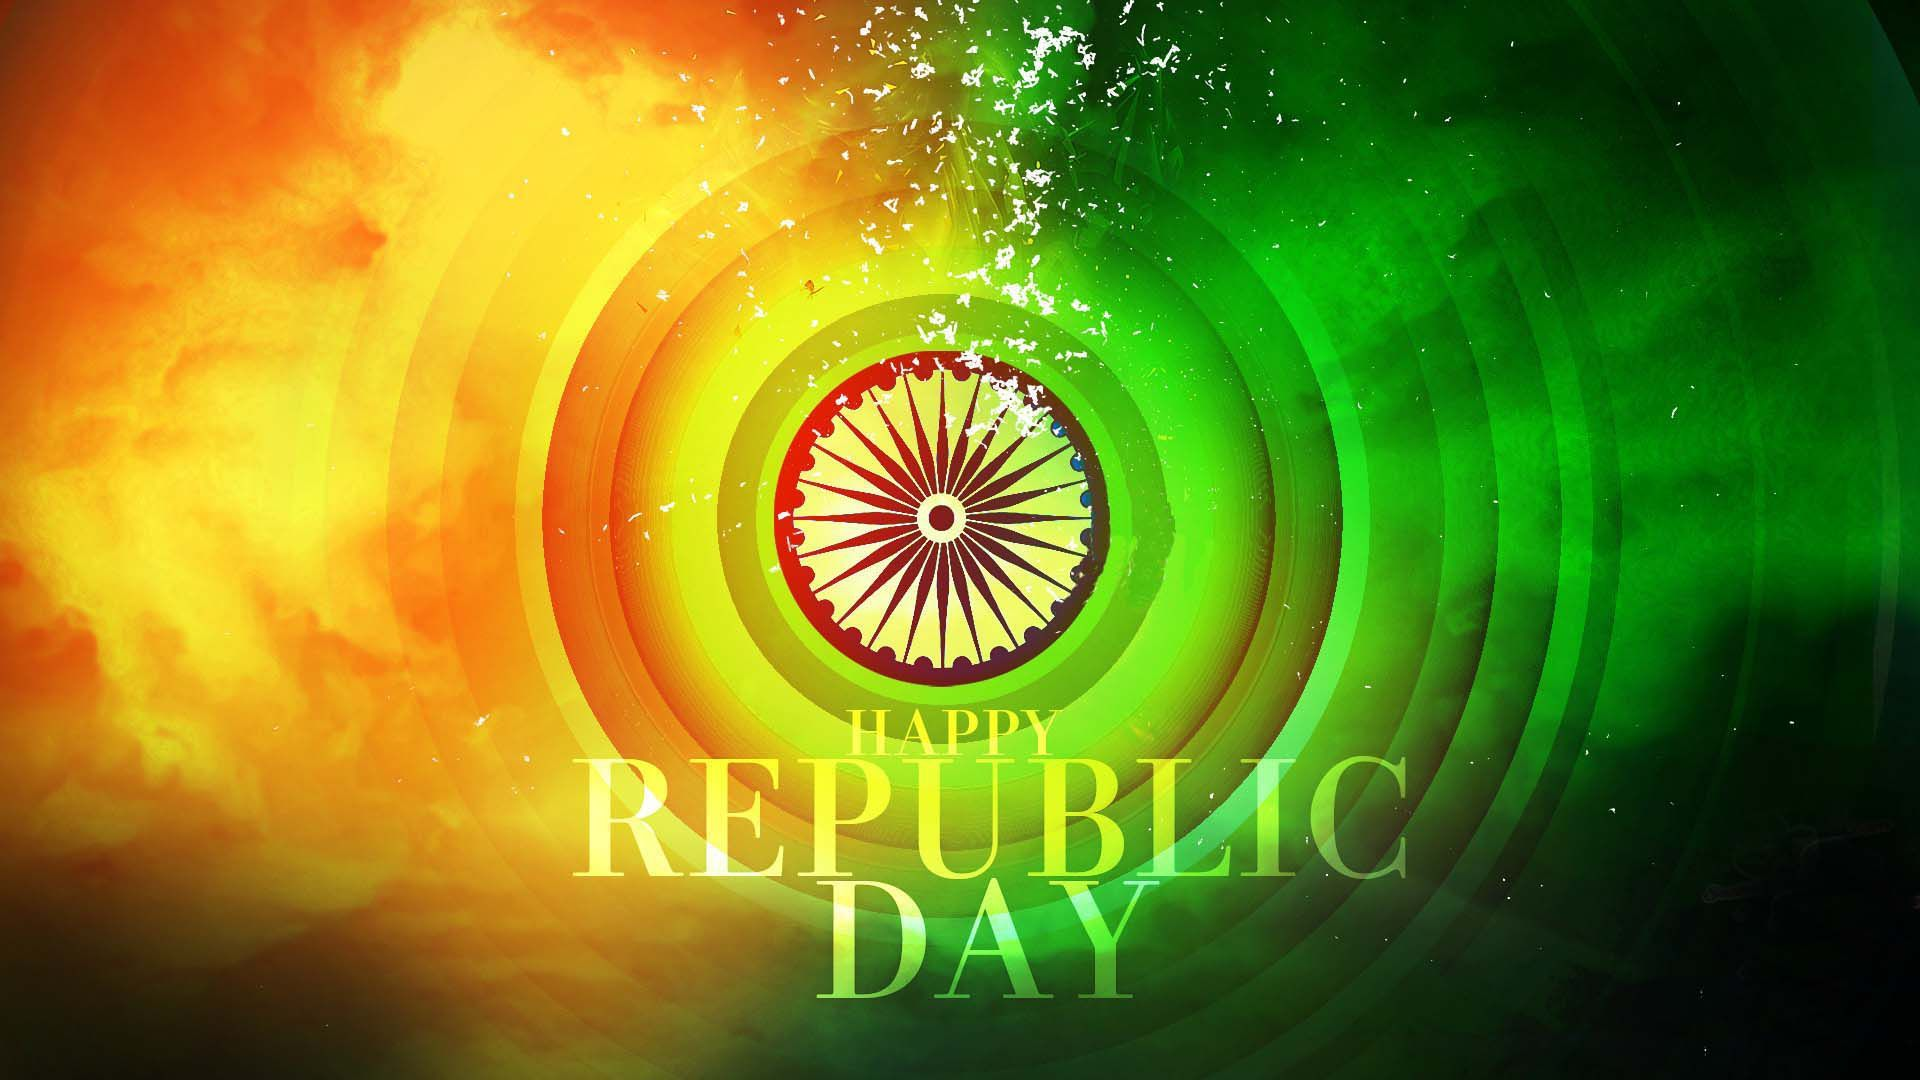 Happy Republic Day Image By Morehdwallpapers Happy Republic Day